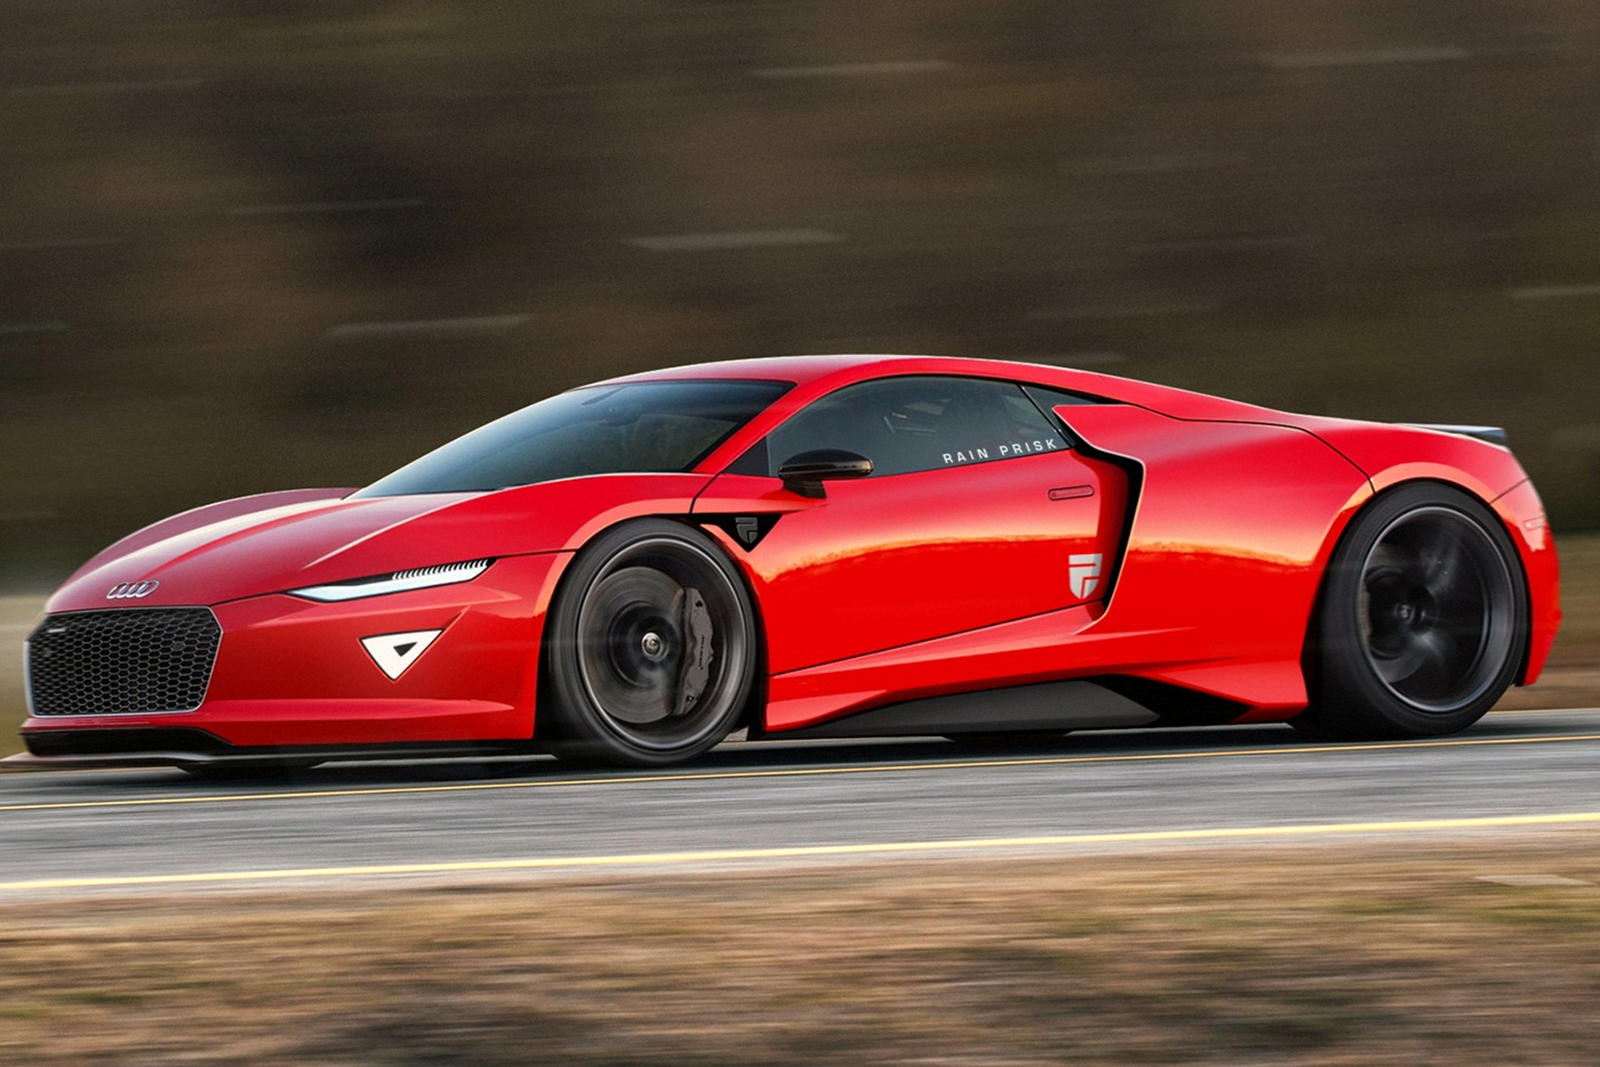 This Is The Flagship Supercar Audi Needs To Make